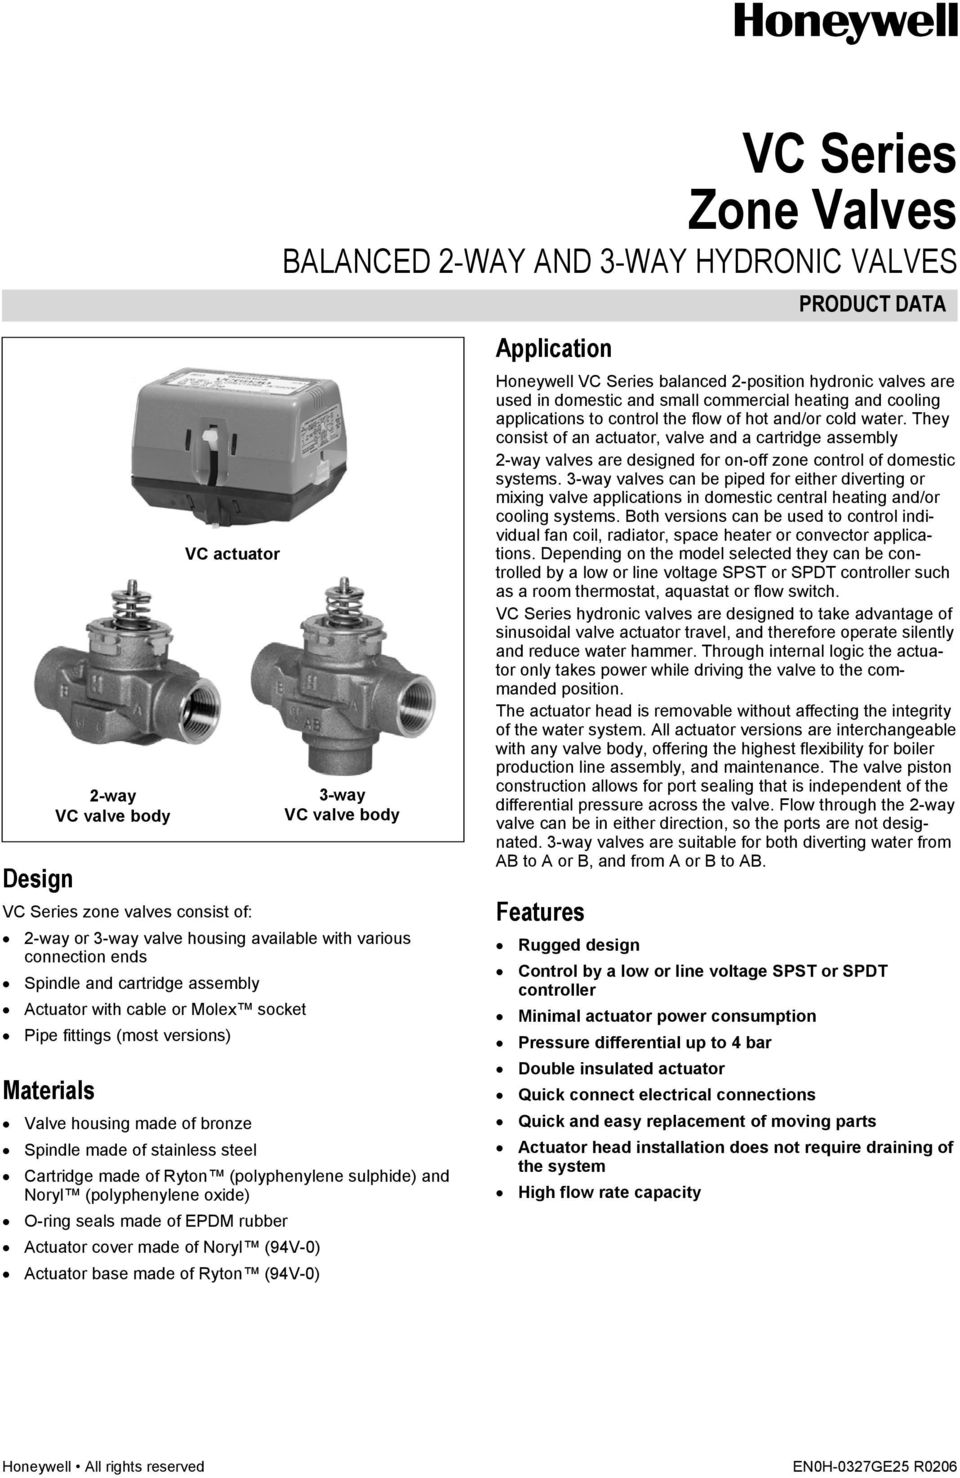 Vc Series Zone Valves Balanced 2 Way And 3 Hydronic Pdf A Hot Water Valve Wiring Diagram Stainless Steel Cartridge Made Of Ryton Polyphenylene Sulphide Noryl Oxide